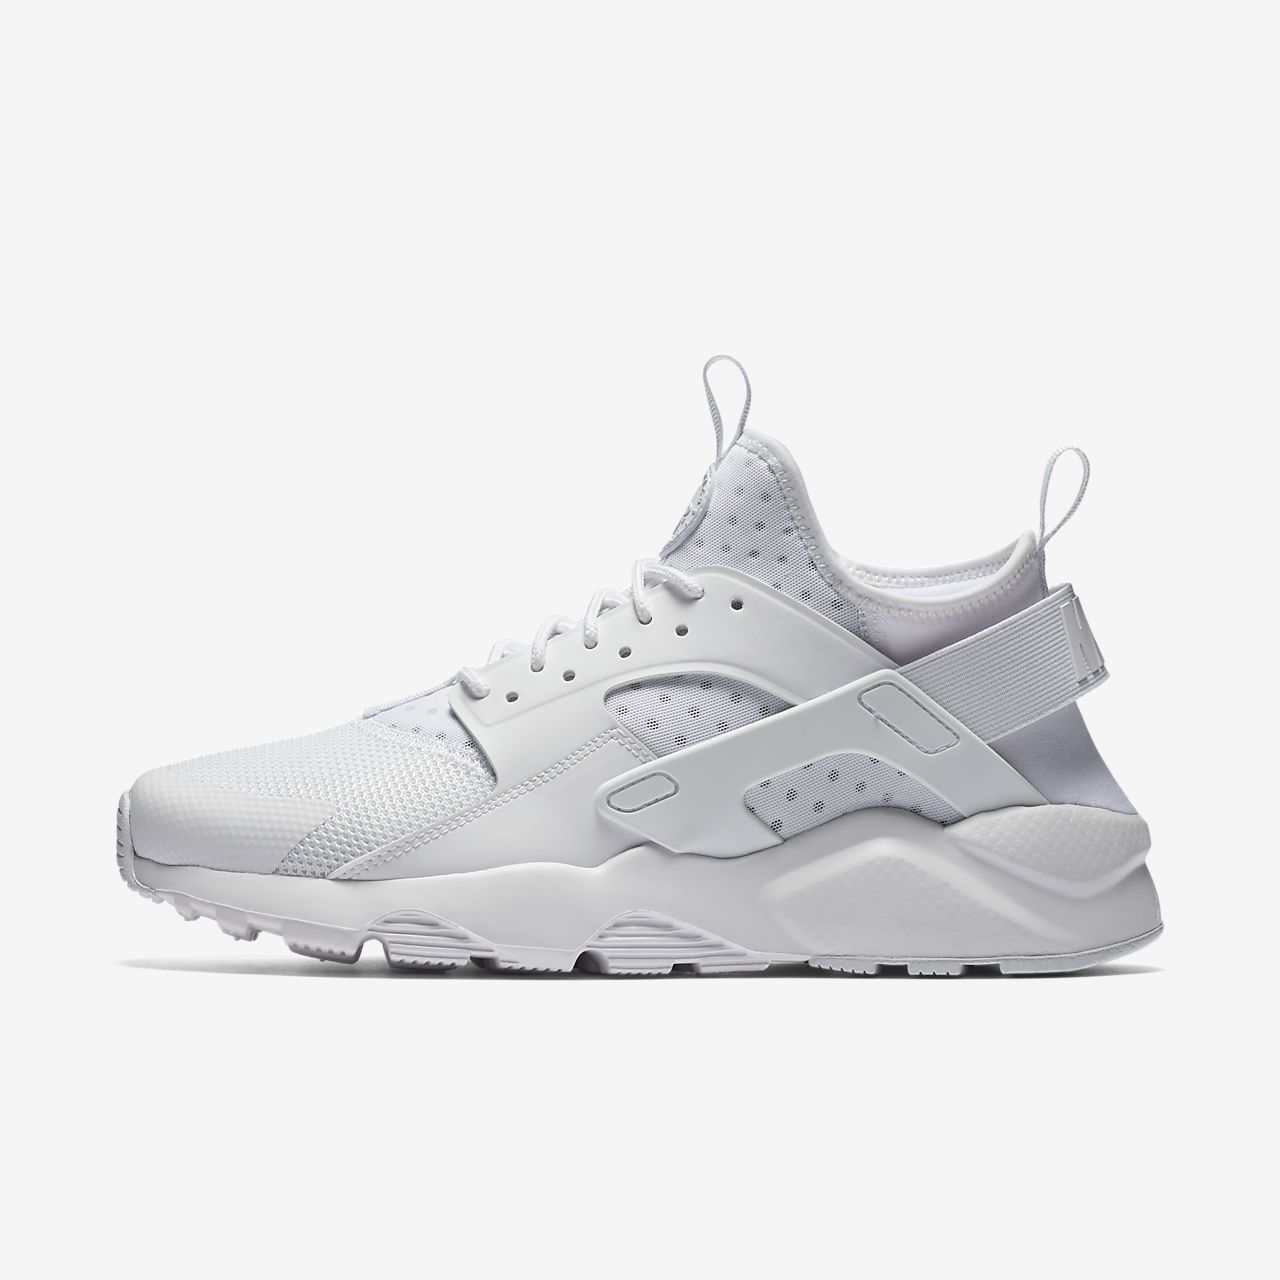 low priced 5b7cf 43920 ... Calzado para hombre Nike Air Huarache Ultra